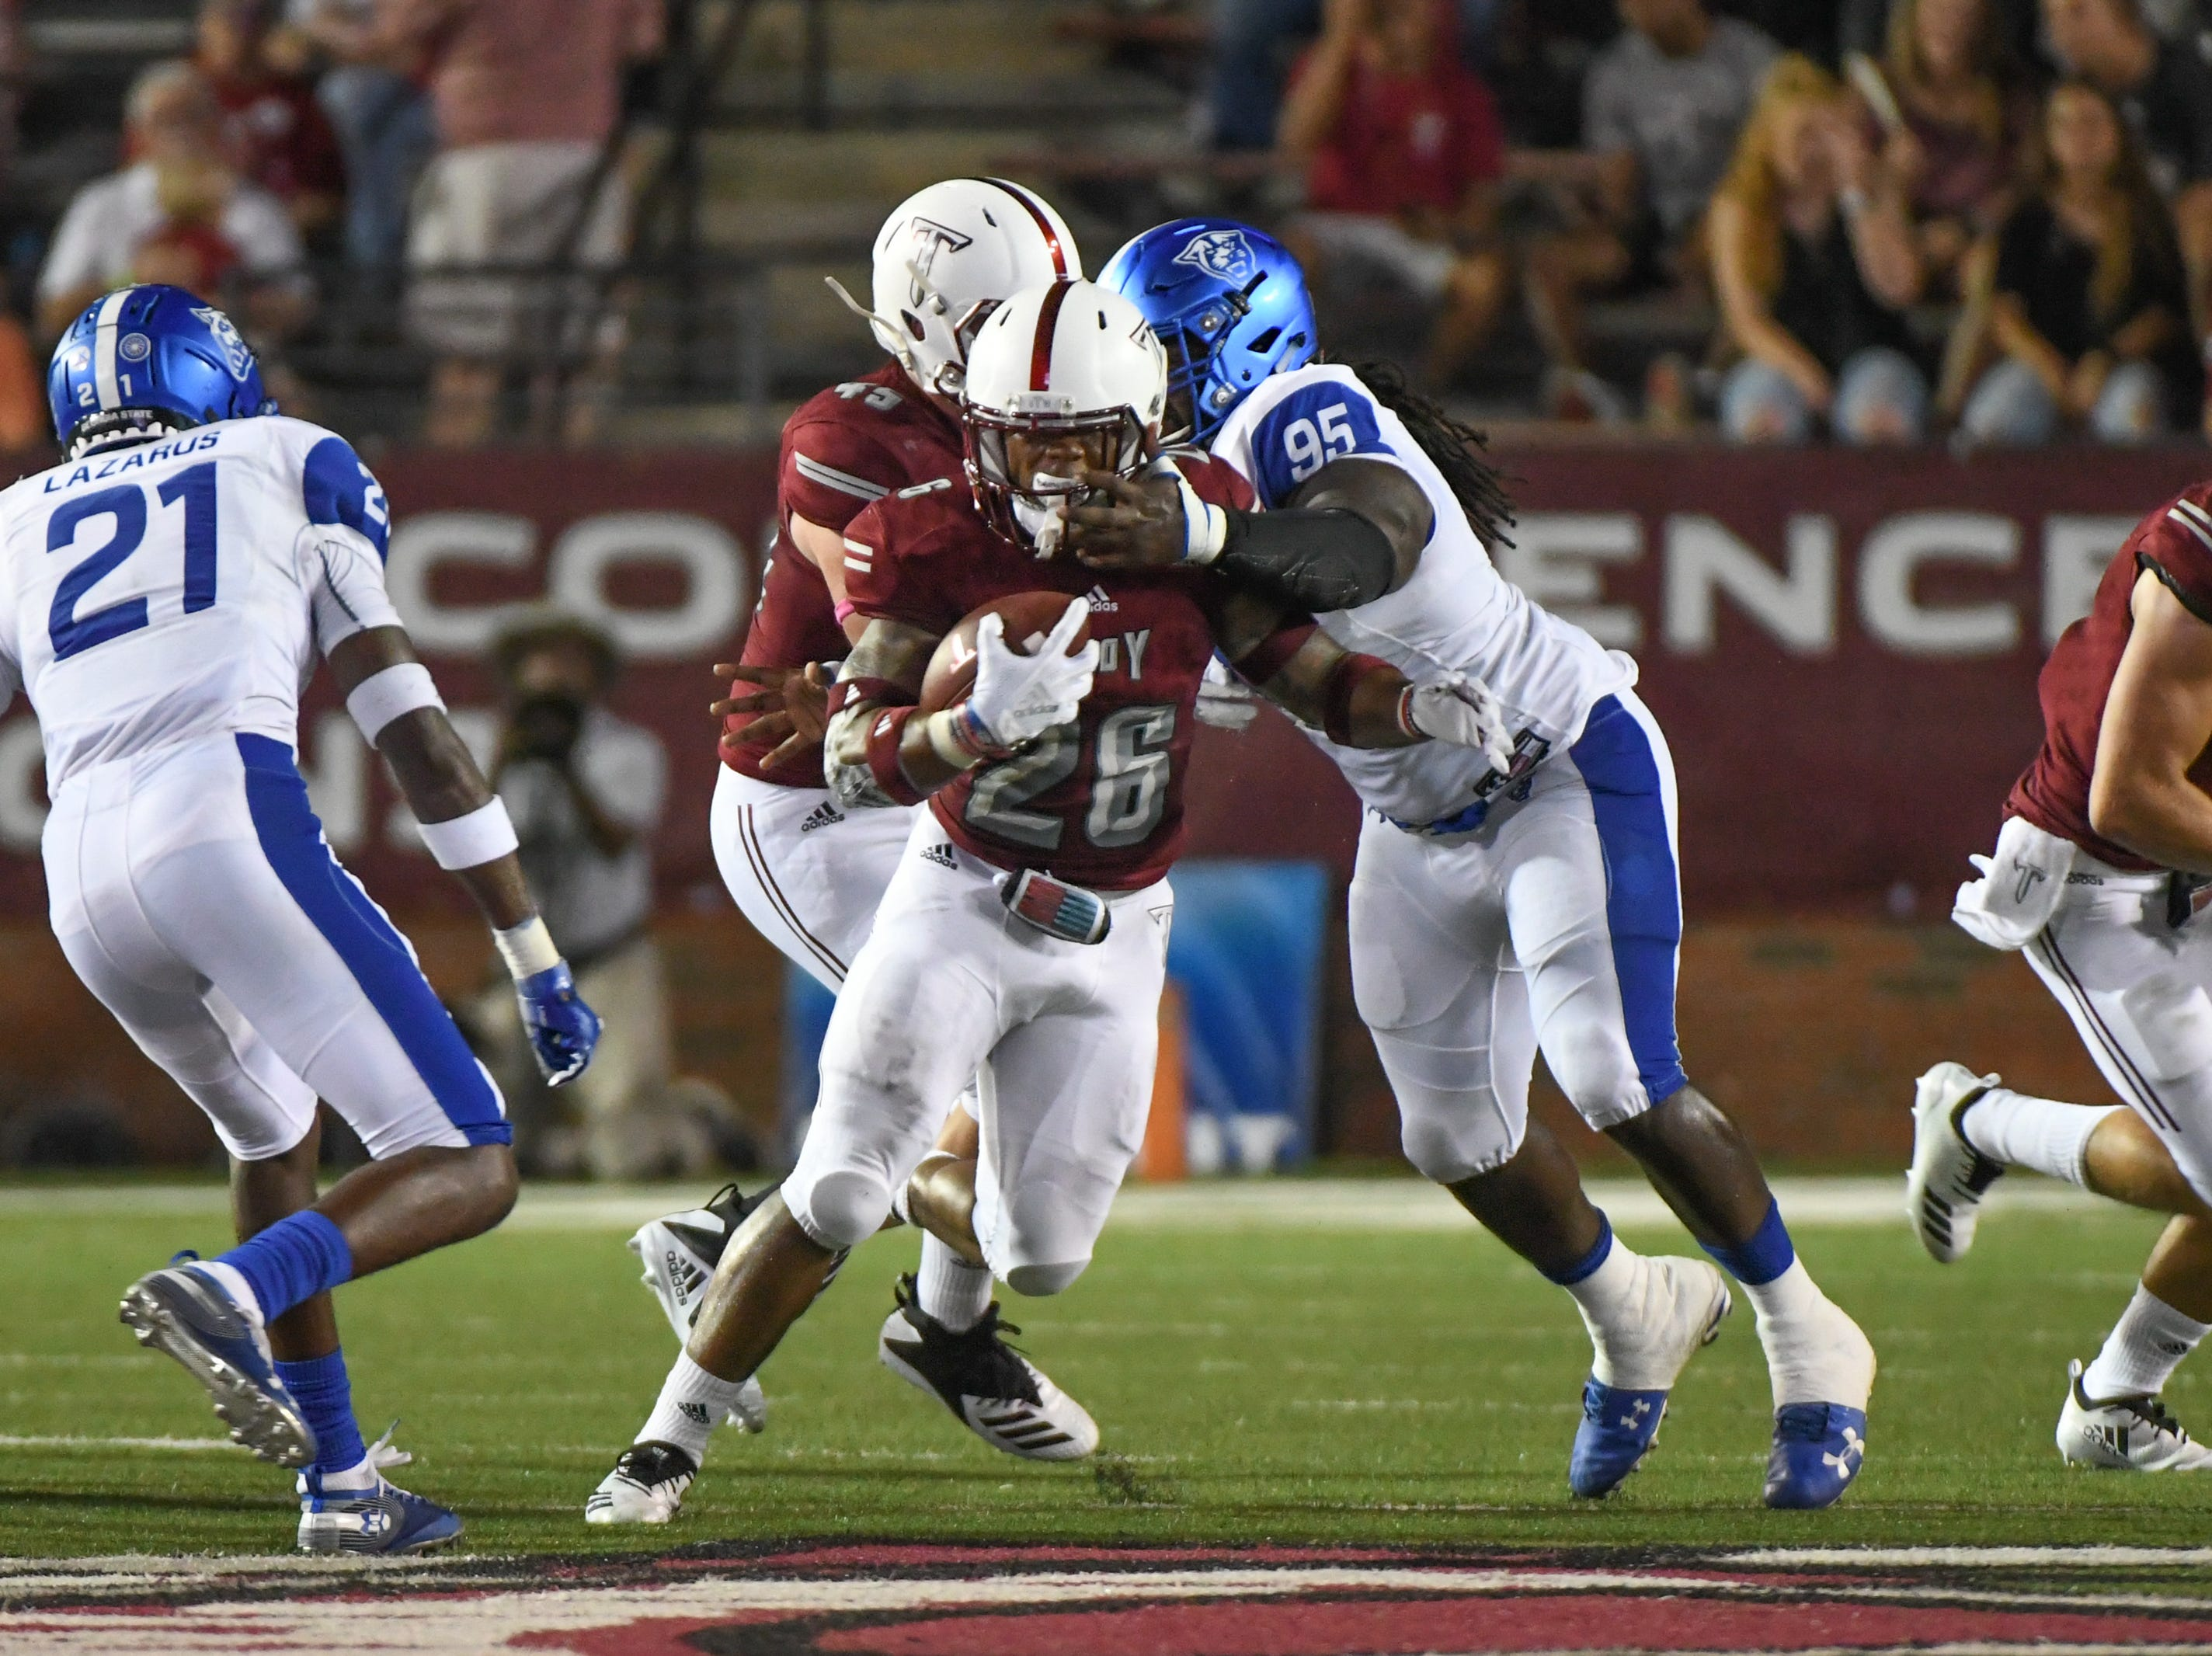 Troy Trojans running back B.J. Smith (26) is tackled by Georgia State Panthers defensive end Marterious Allen (95) during the first half at Veteran's Memorial Stadium in Troy, Ala., on Thursday, Oct. 4, 2018. (Chip Dillard/Special to the Montgomery Advertiser)